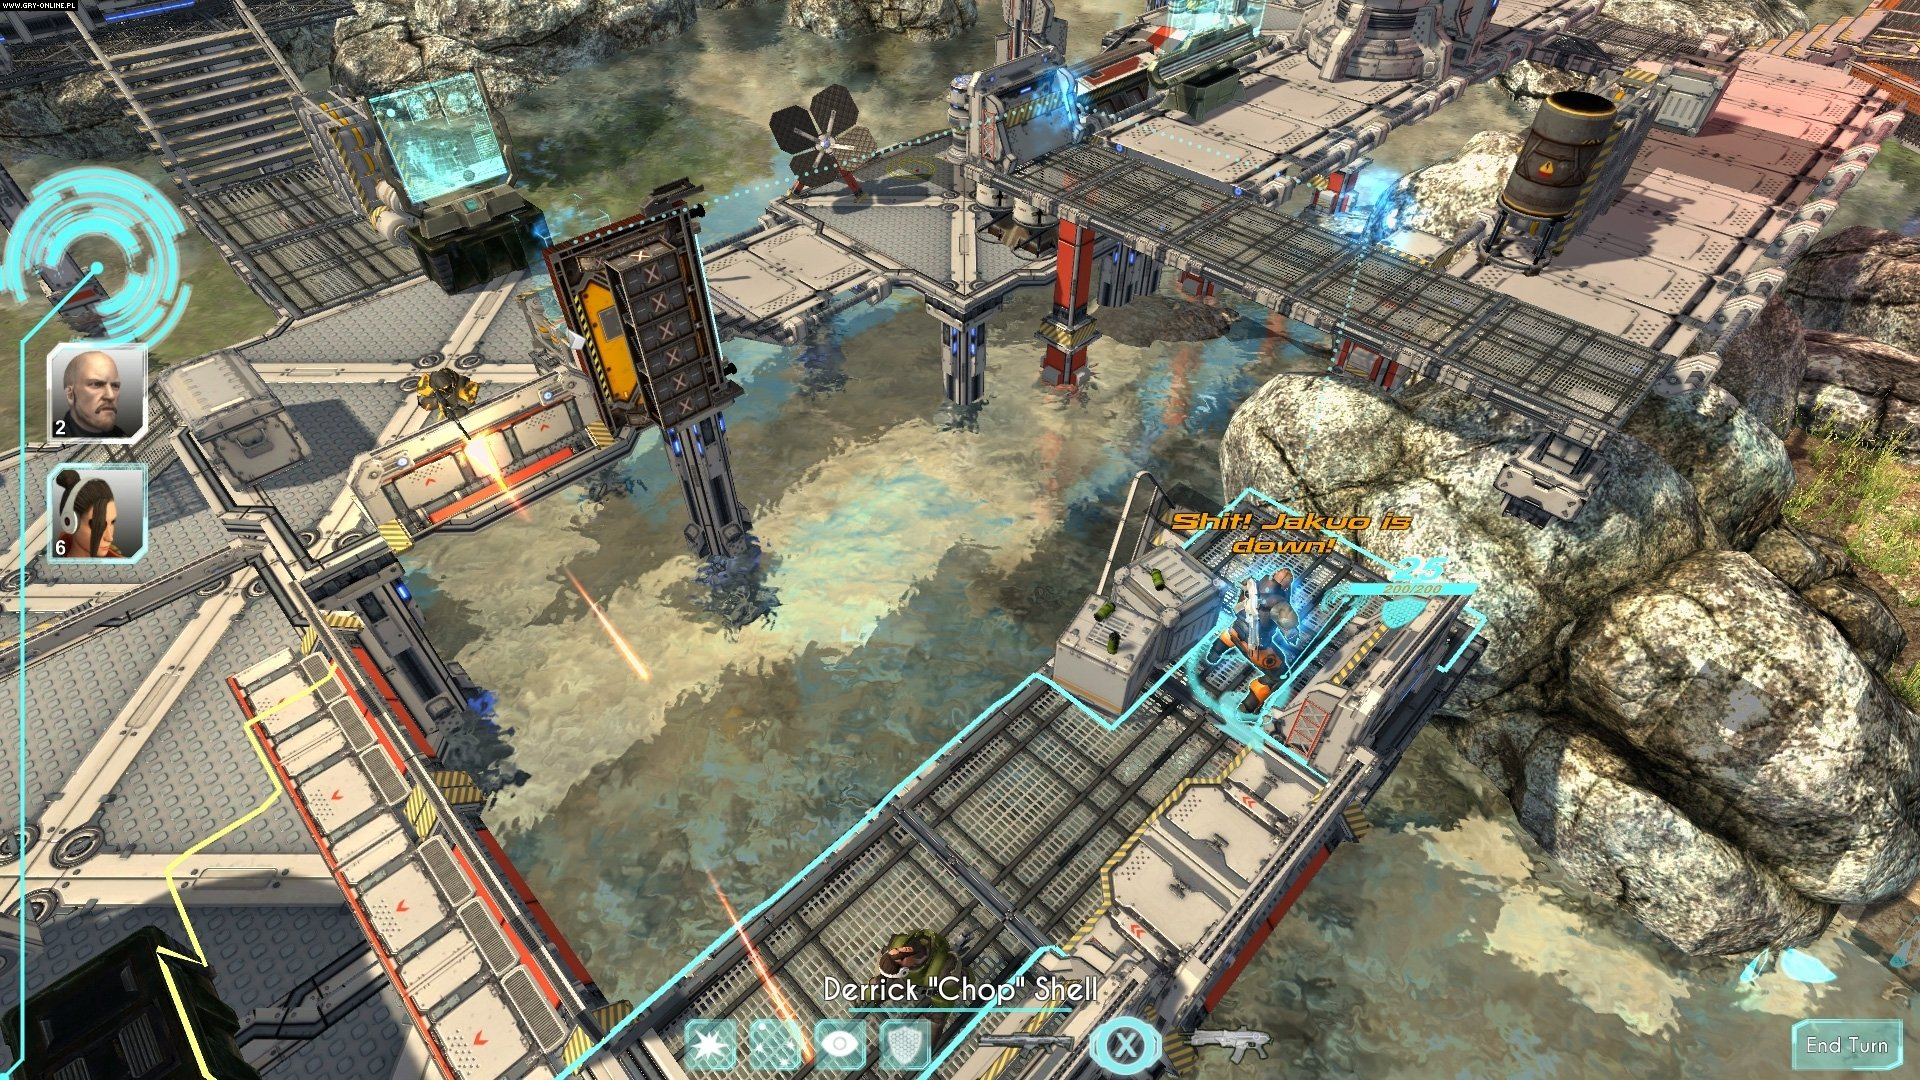 Shock Tactics PC Games Image 9/9, Point Blank Games, EuroVideo Medien